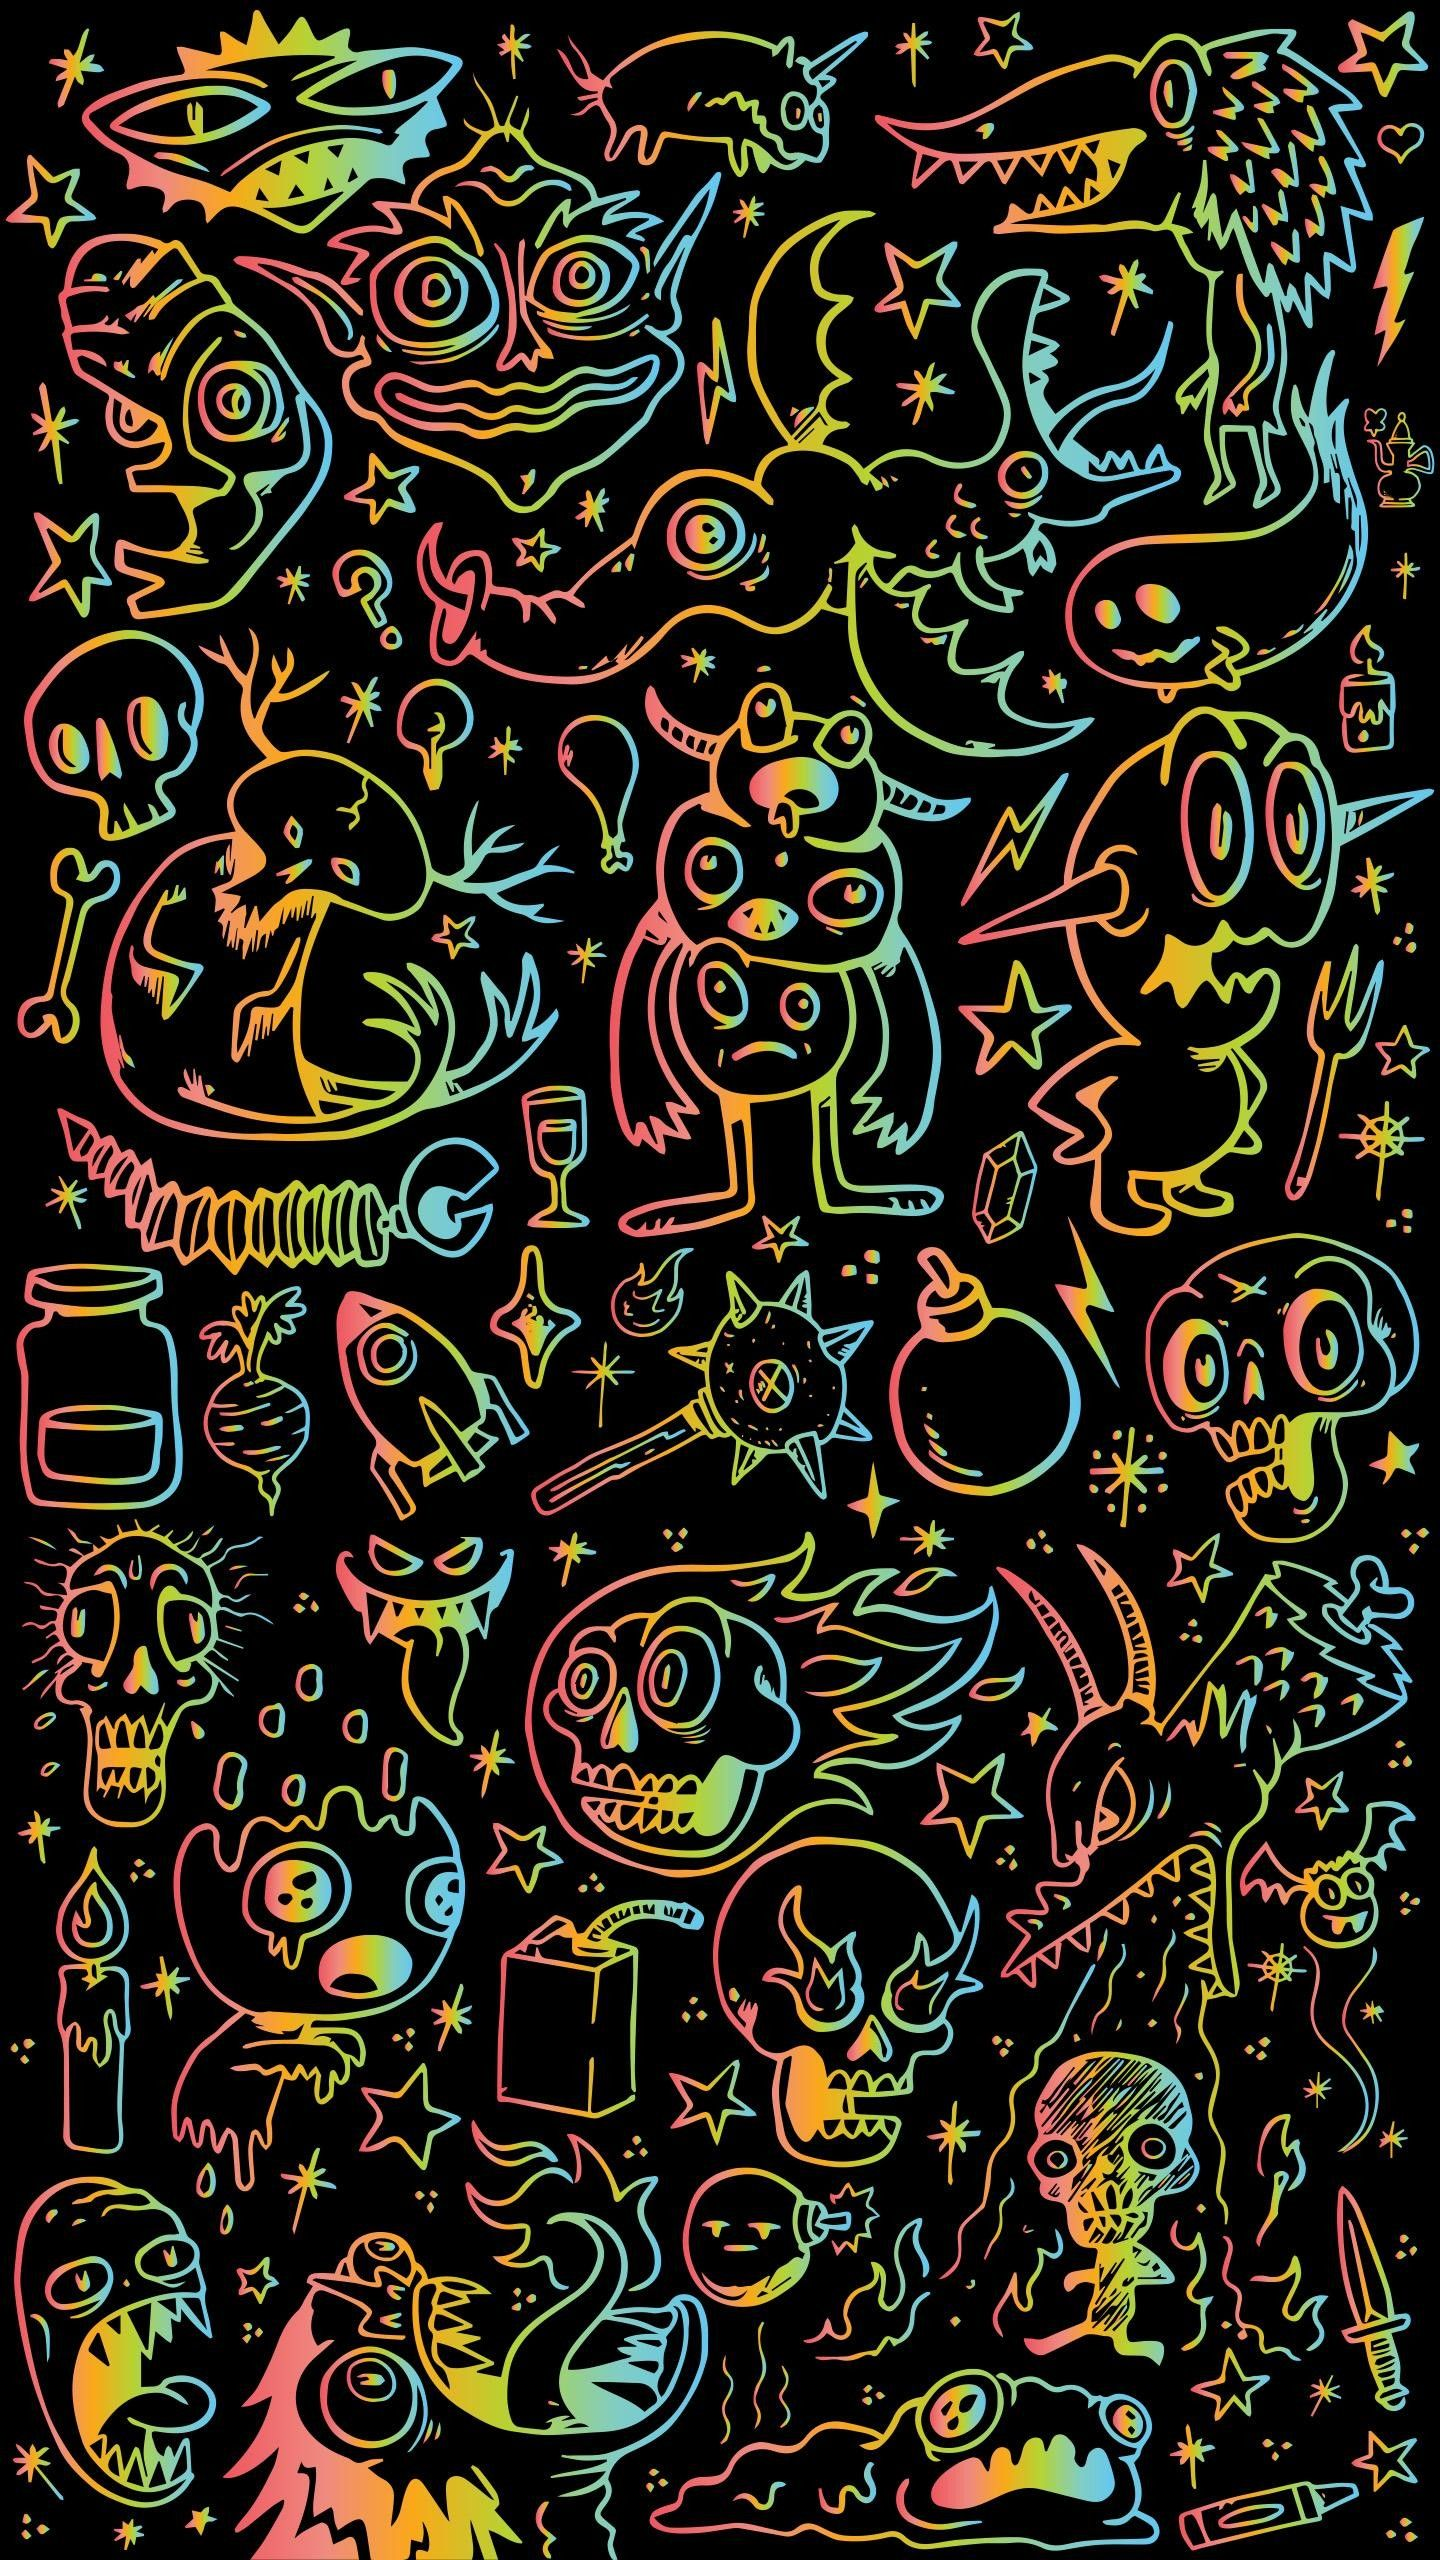 50 Doodle Wallpapers On Wallpaperplay In 2021 Wallpaper Wa Graffiti Wallpaper Witchy Wallpaper